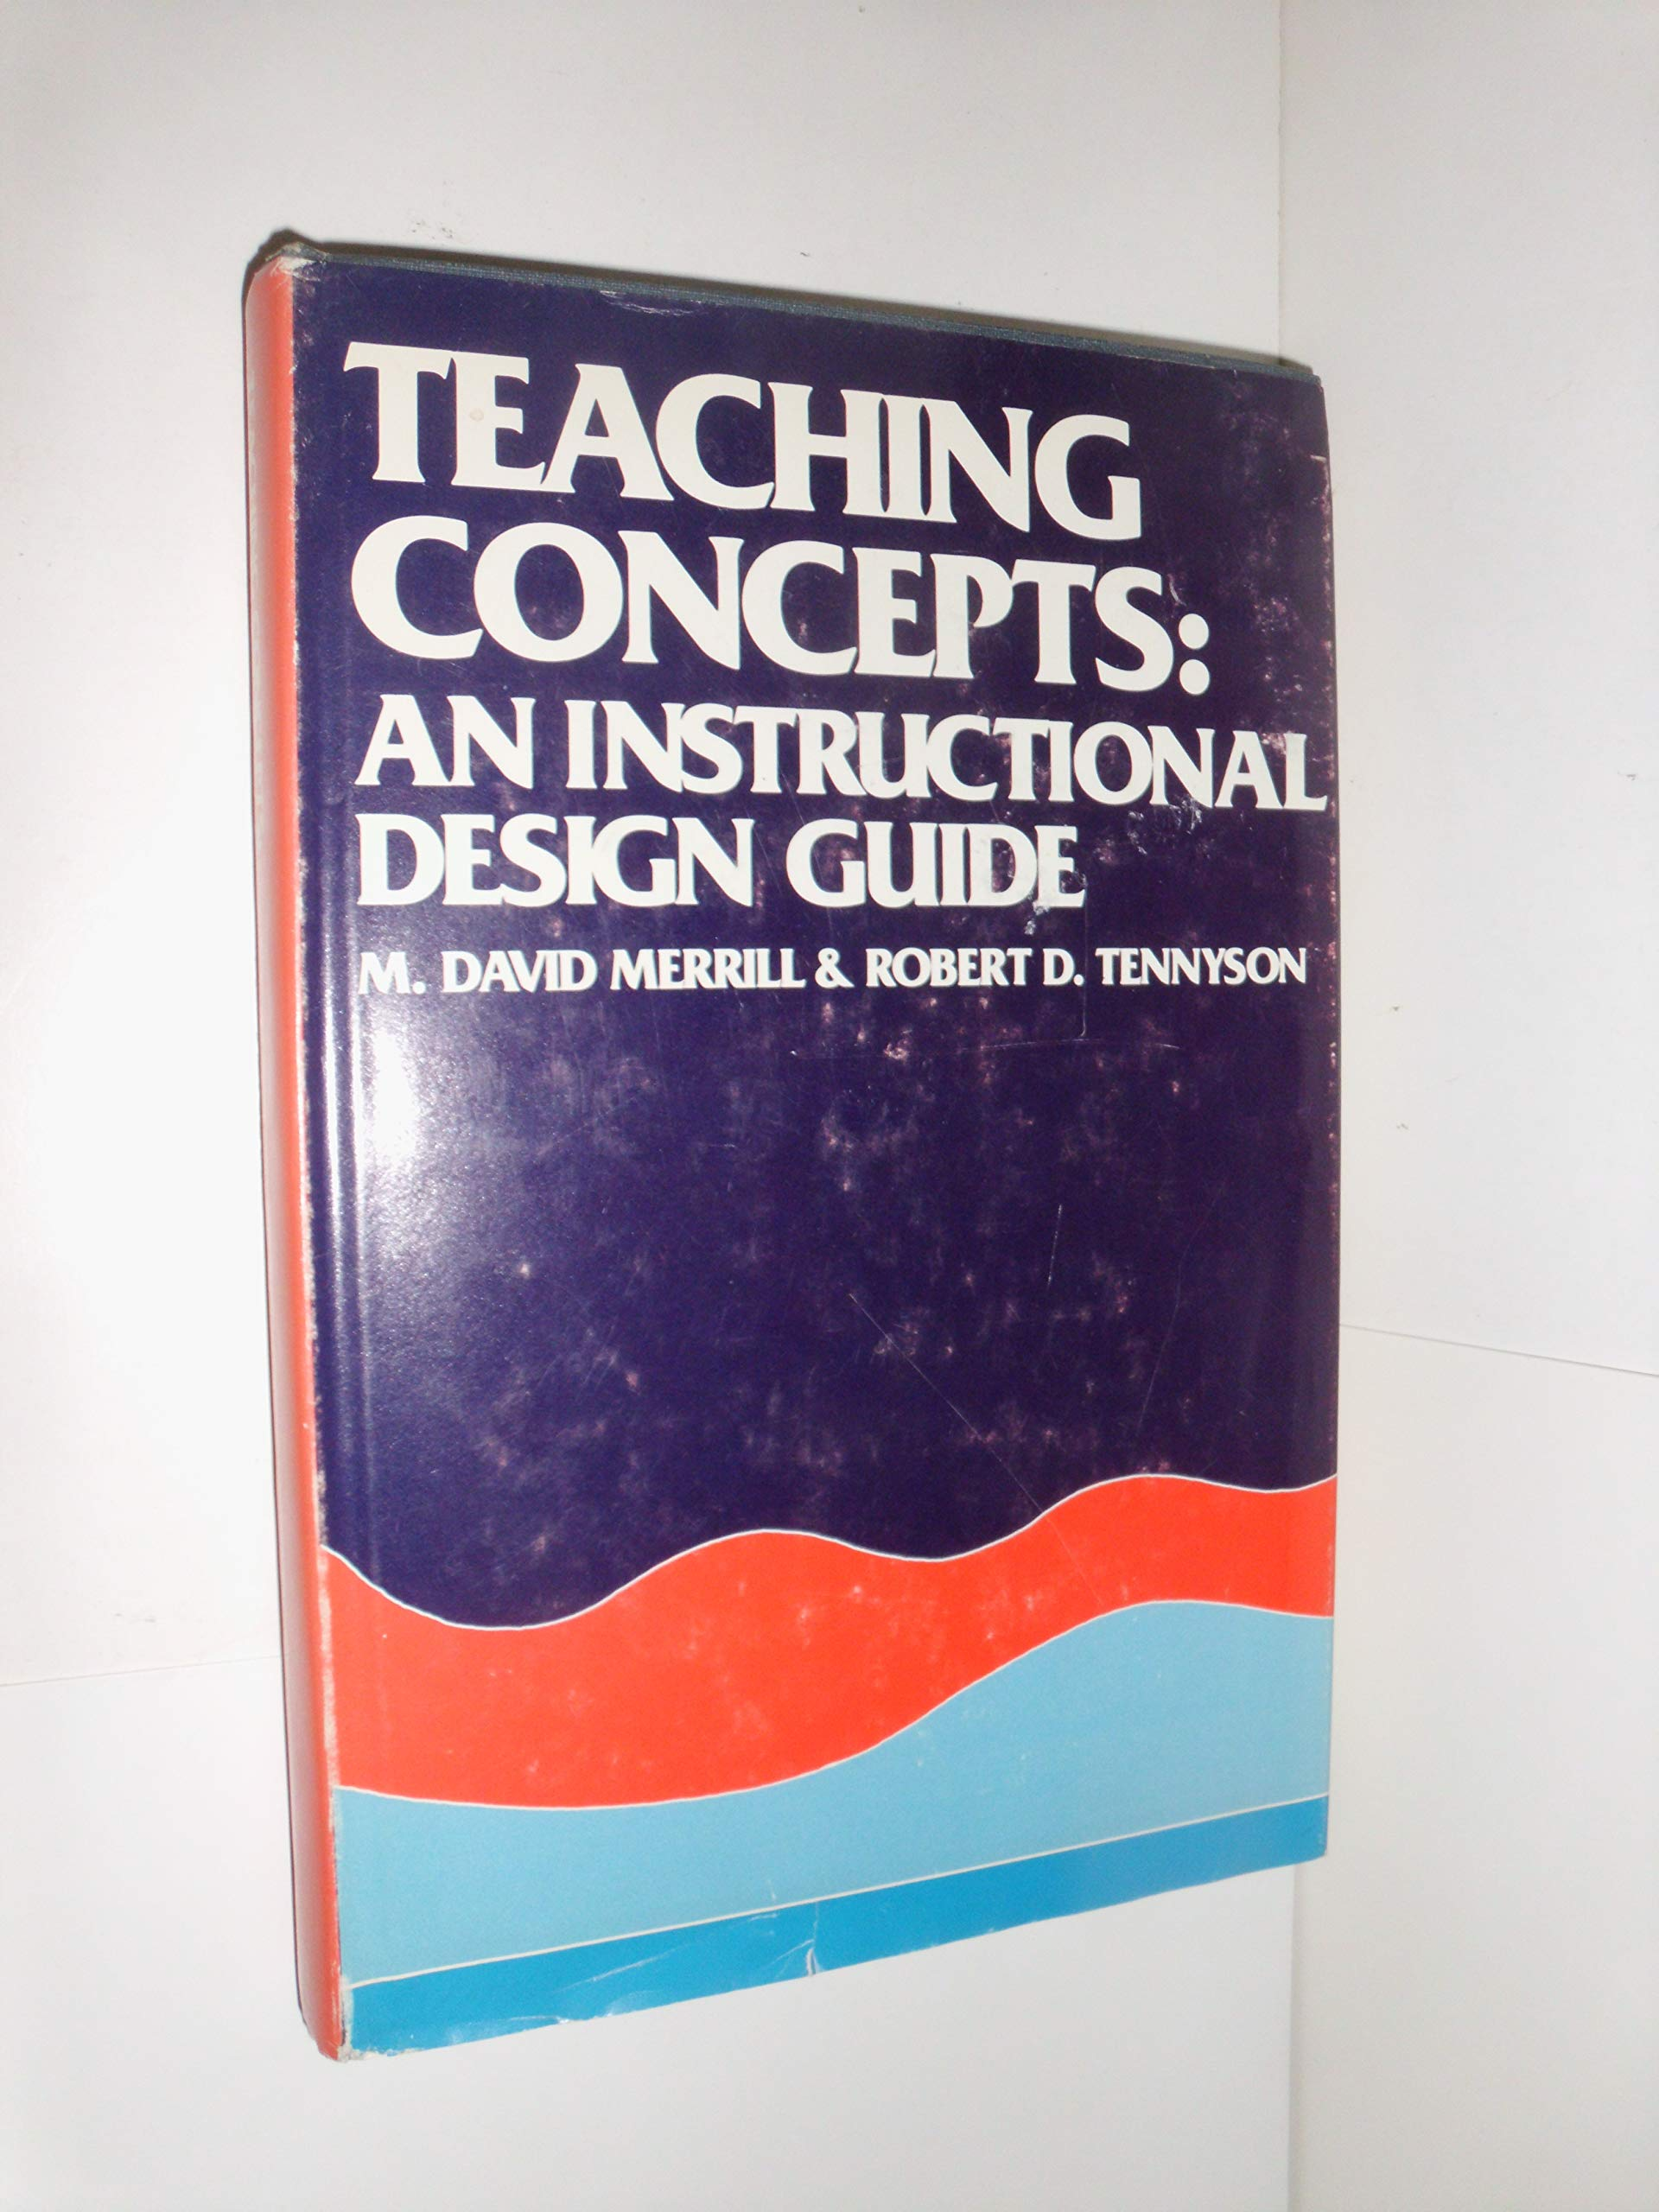 Teaching Concepts An Instructional Design Guide Merrill M David 9780877780939 Amazon Com Books